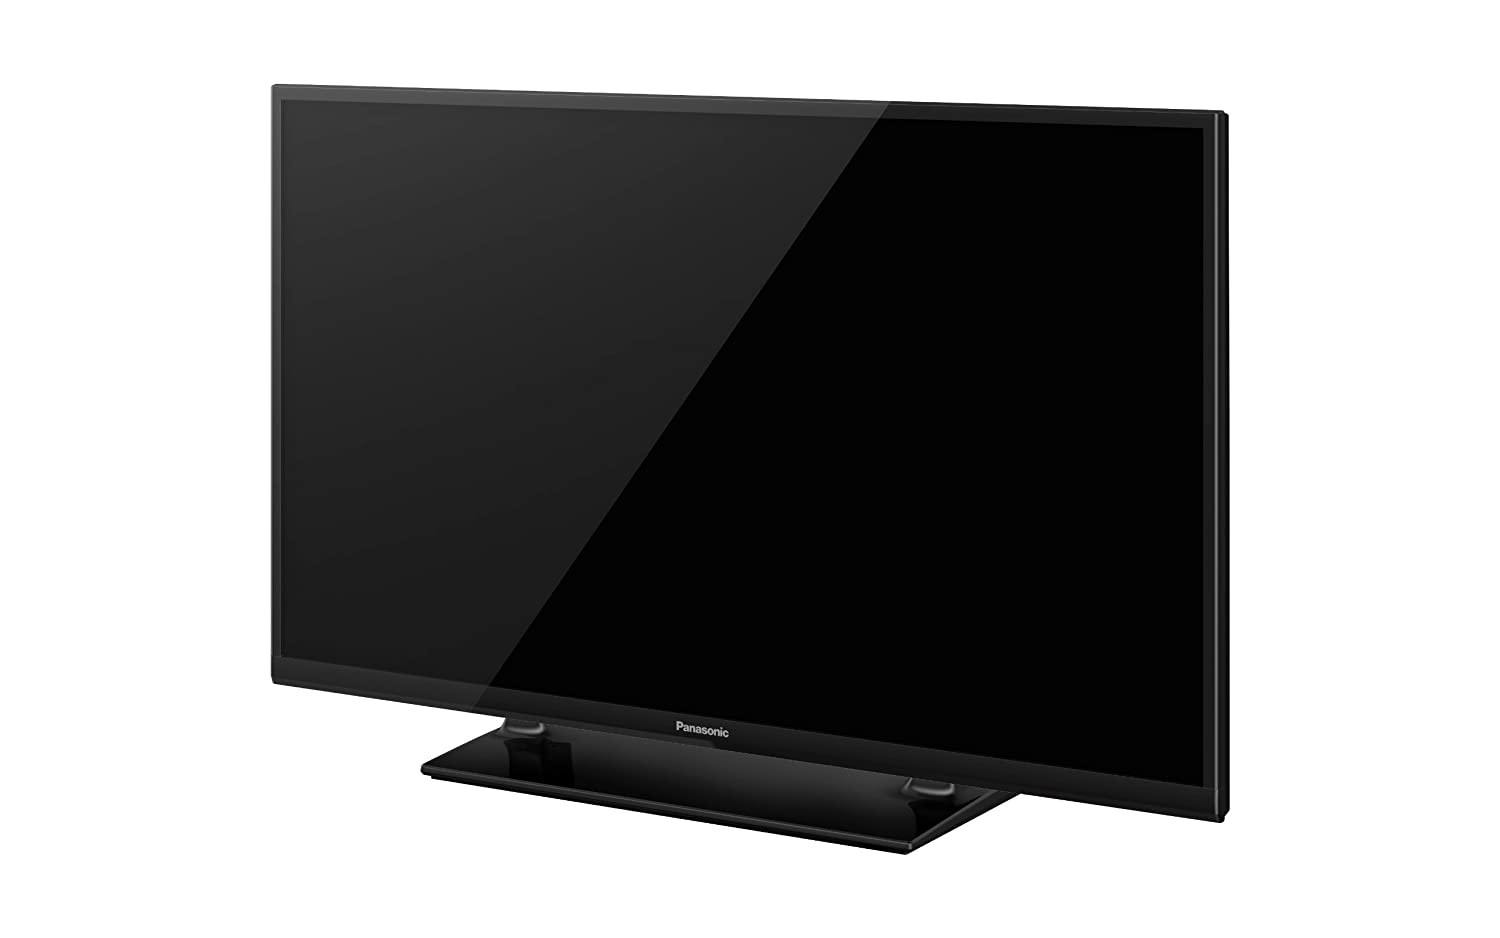 panasonic viera tx 32aw404 80 cm 32 zoll fernseher hd ready triple tuner 5025232777365 ebay. Black Bedroom Furniture Sets. Home Design Ideas